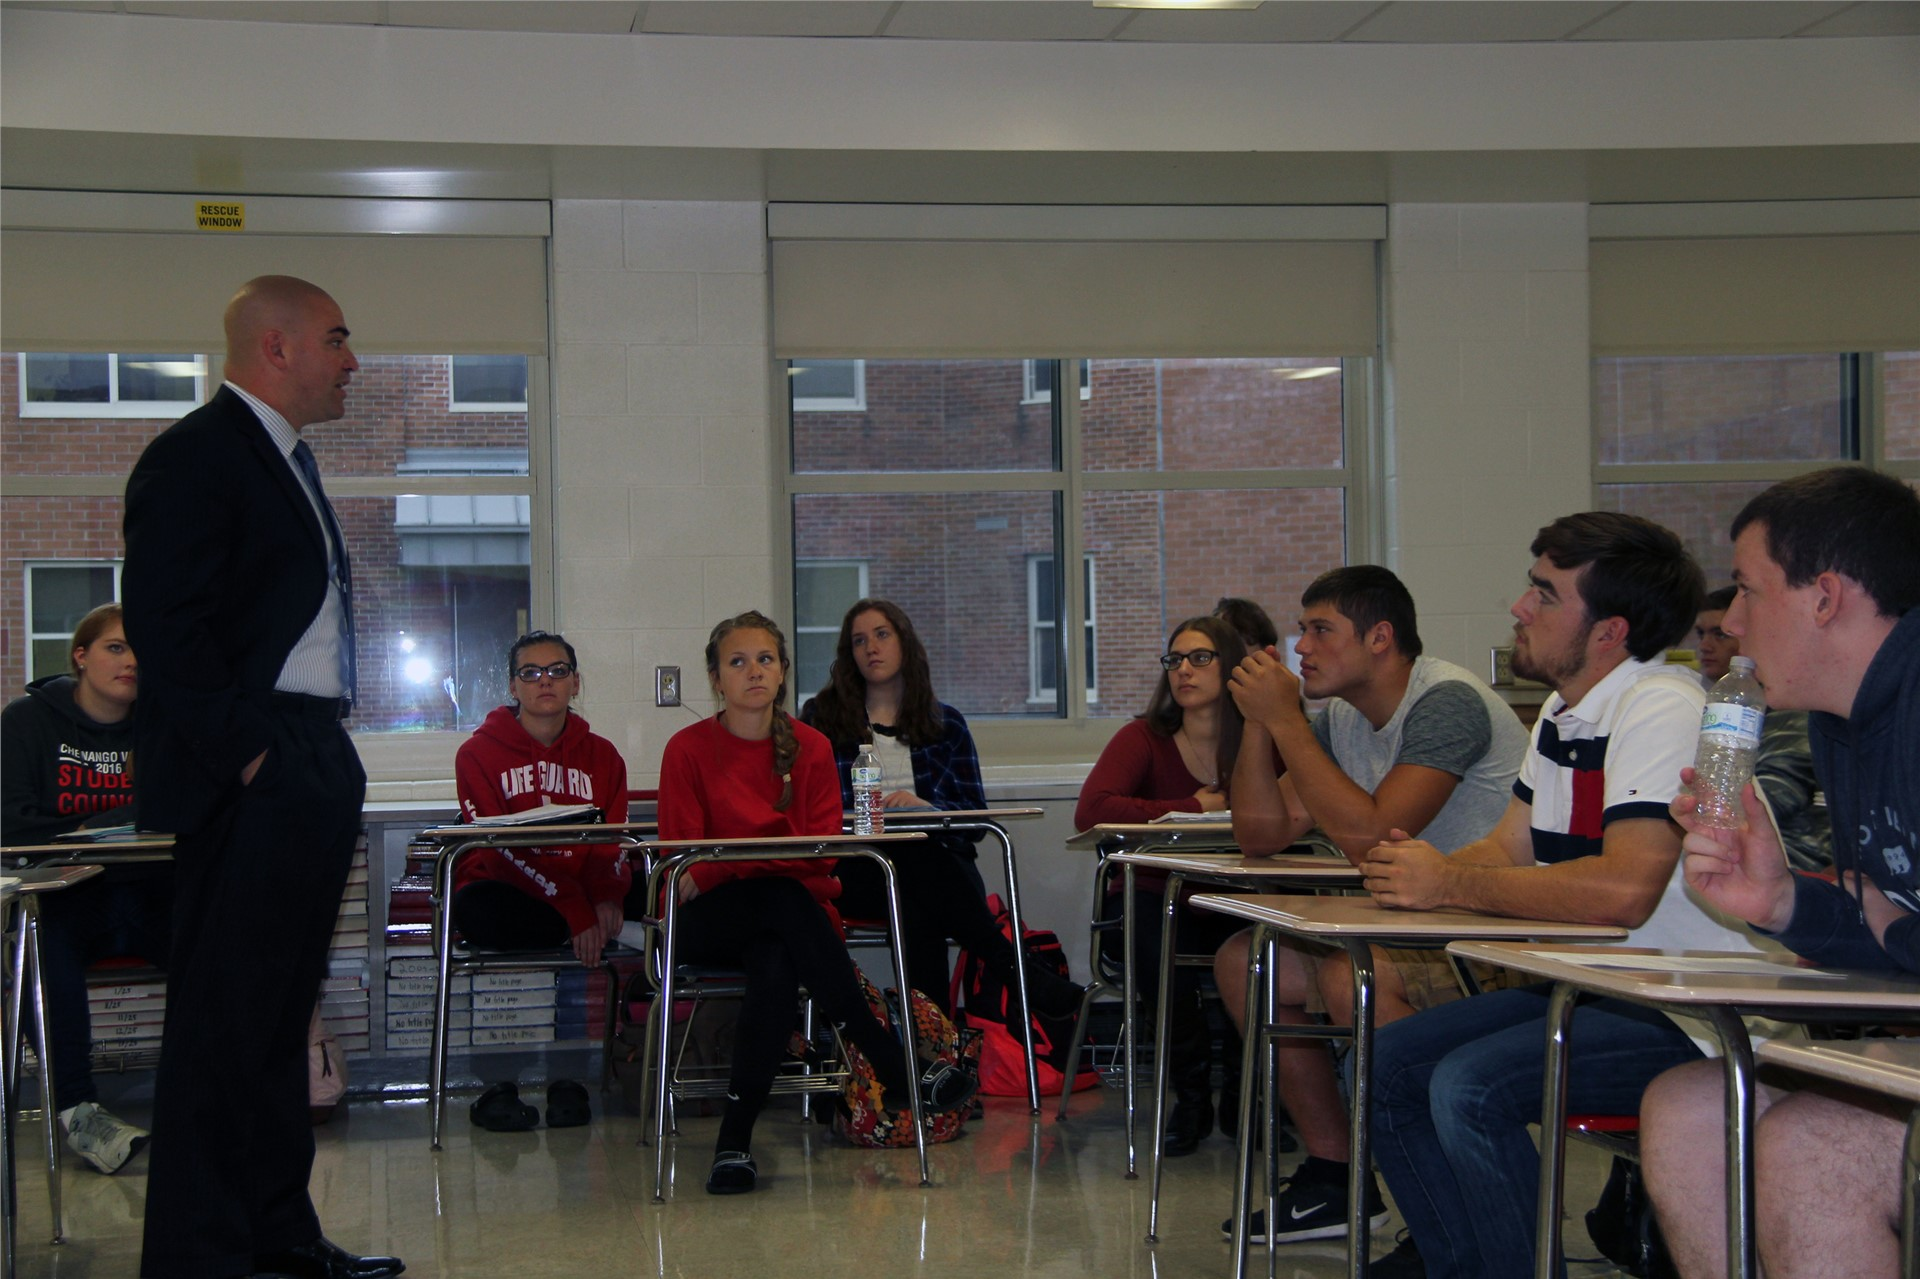 senator akshar standing talking to students